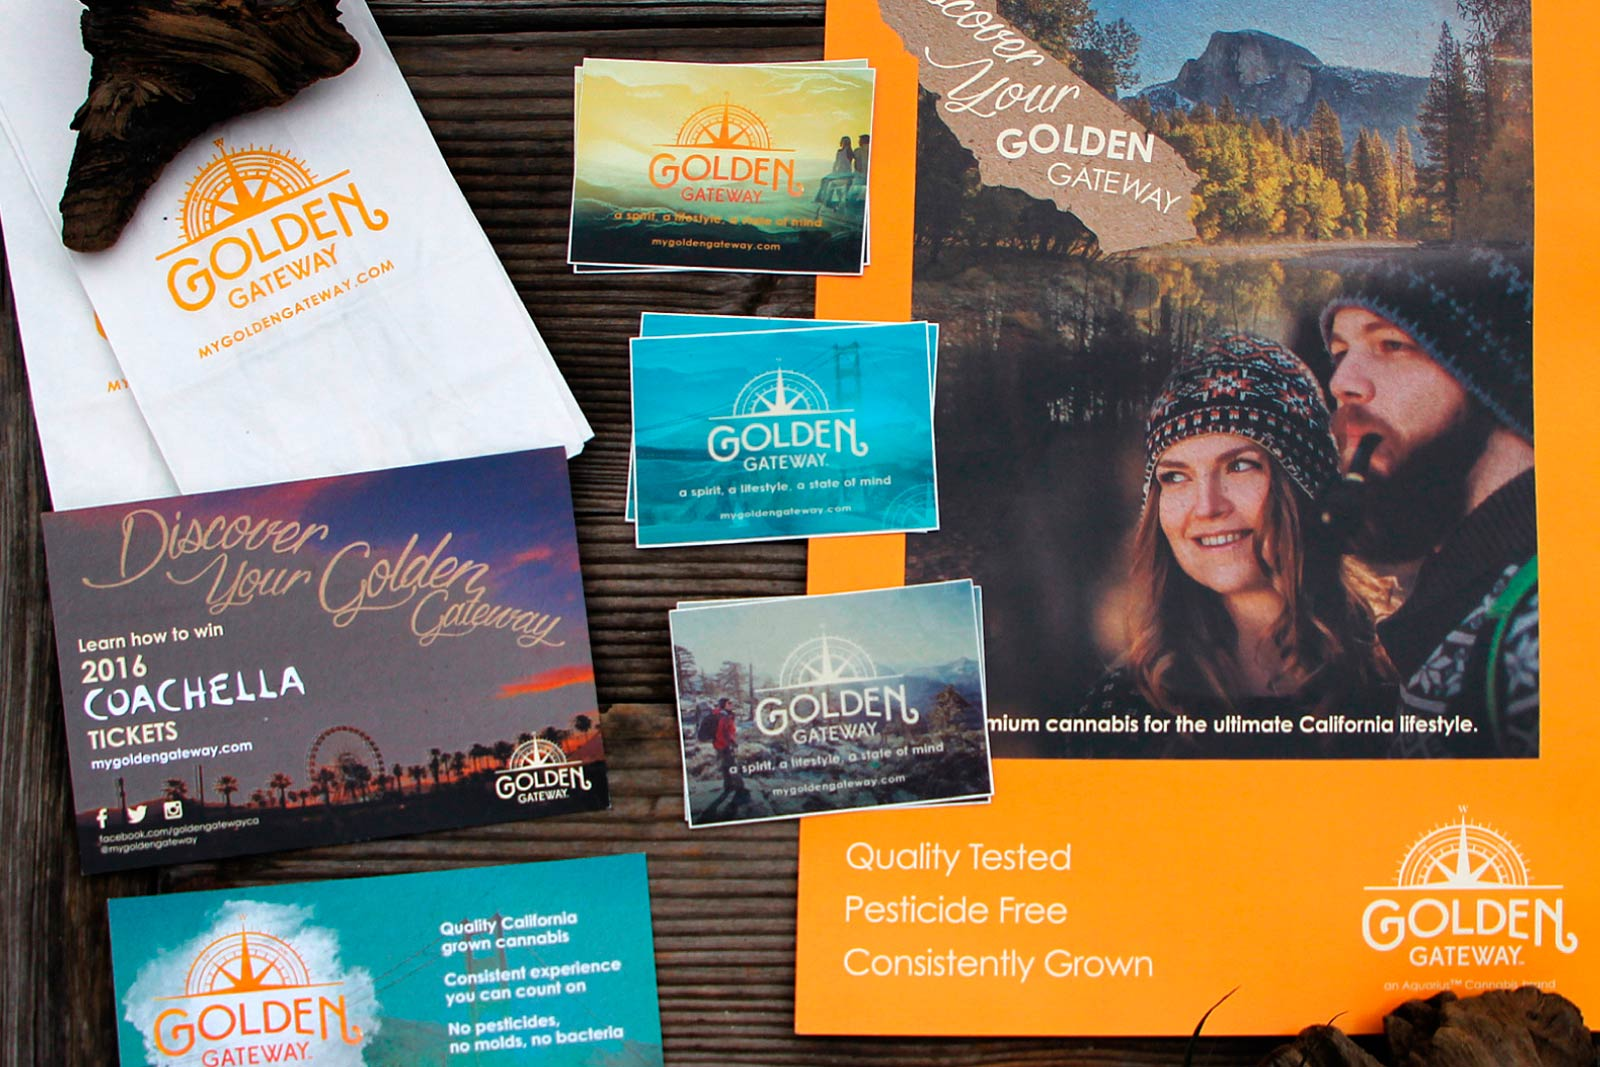 Golden Gateway's printed marketing collateral